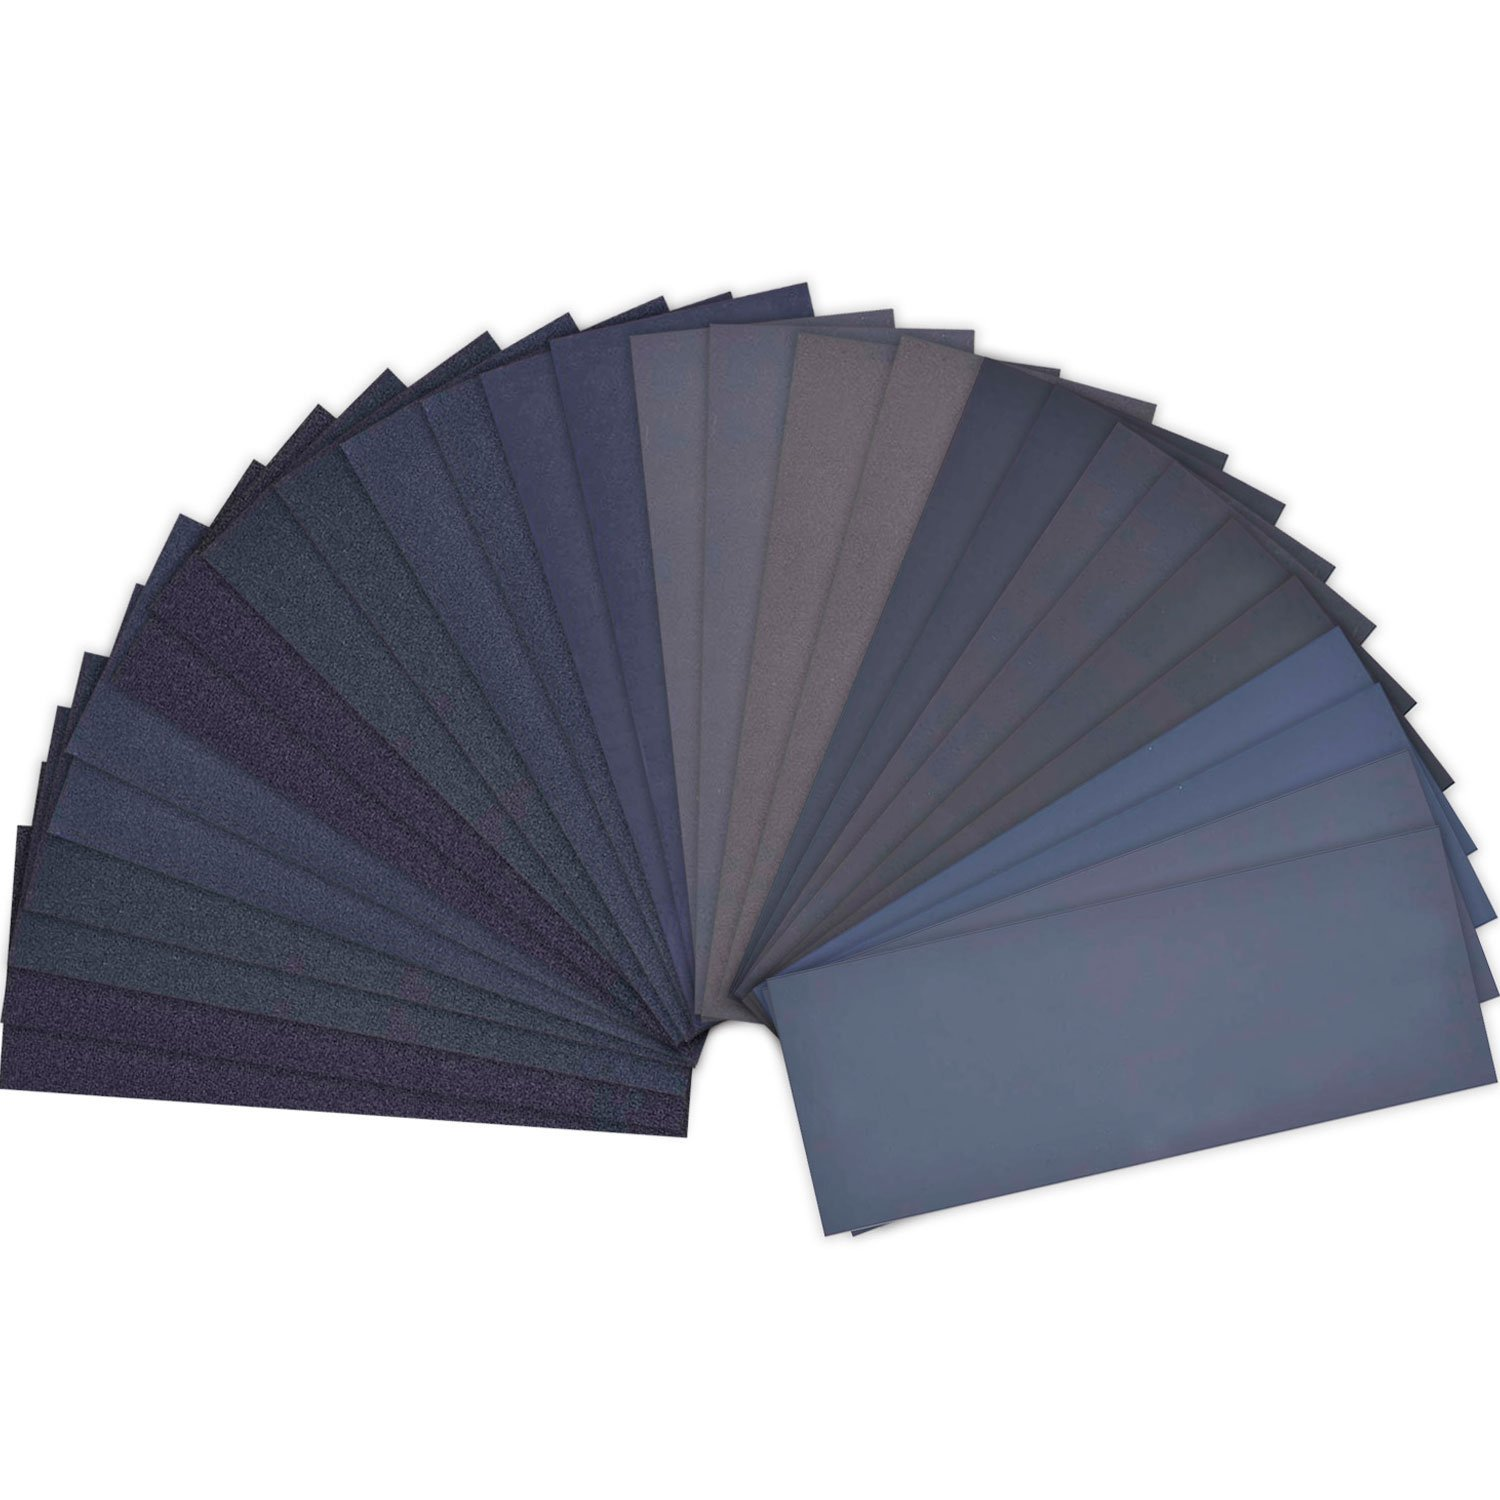 28 Pieces 120 to 3000 Grit Wet Dry Sandpaper Assortment Abrasive Paper Sheets 9 by 3.6 Inches for Automotive Sanding, Wood Furniture Finishing, Wood Turing Finishing LANHU